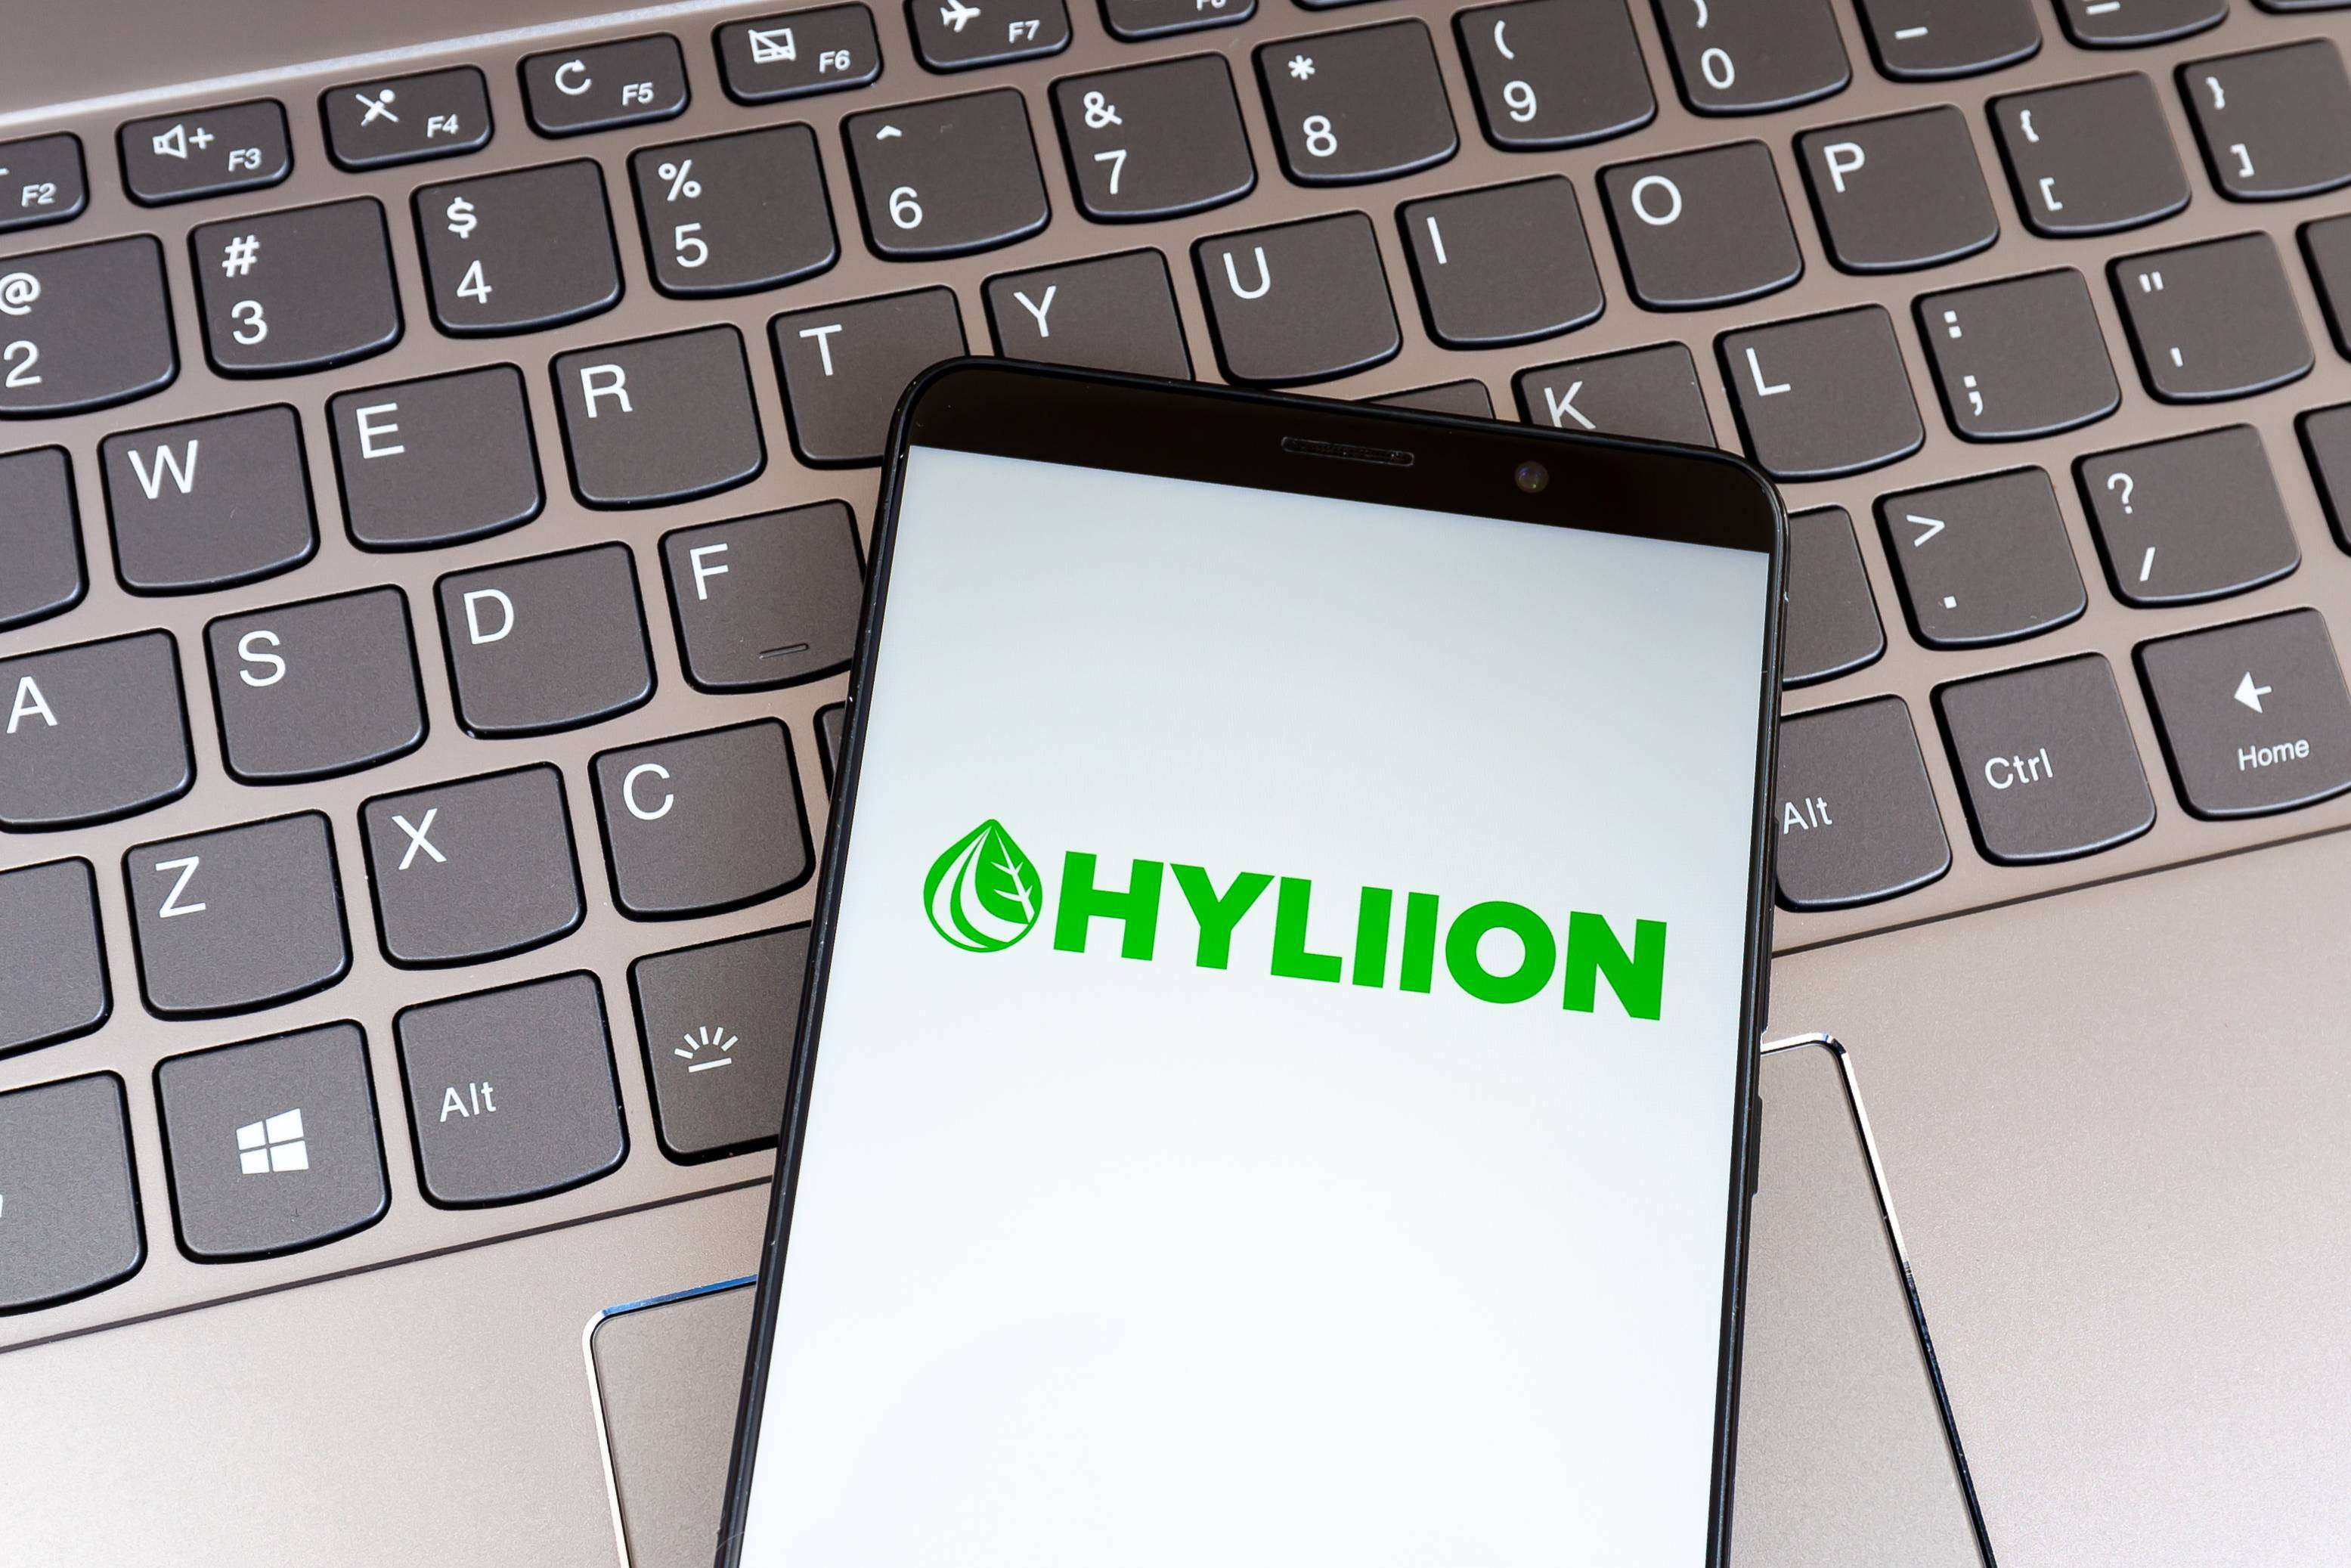 Hyliion stock has a 86% upside according to Wallstreet analysts